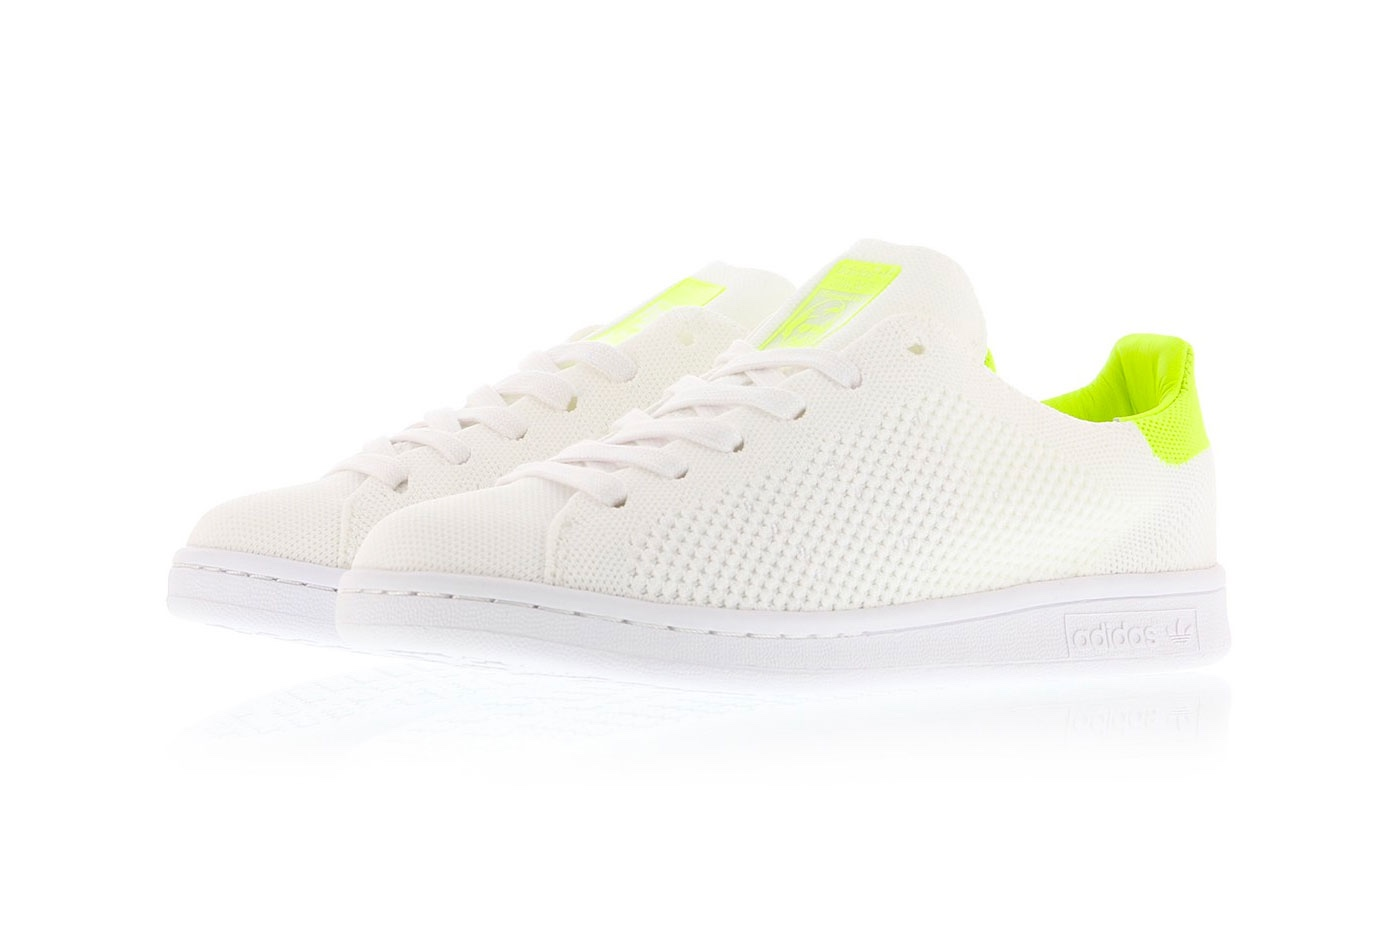 adidas-stan-smith-primeknit-solar-yellow-2